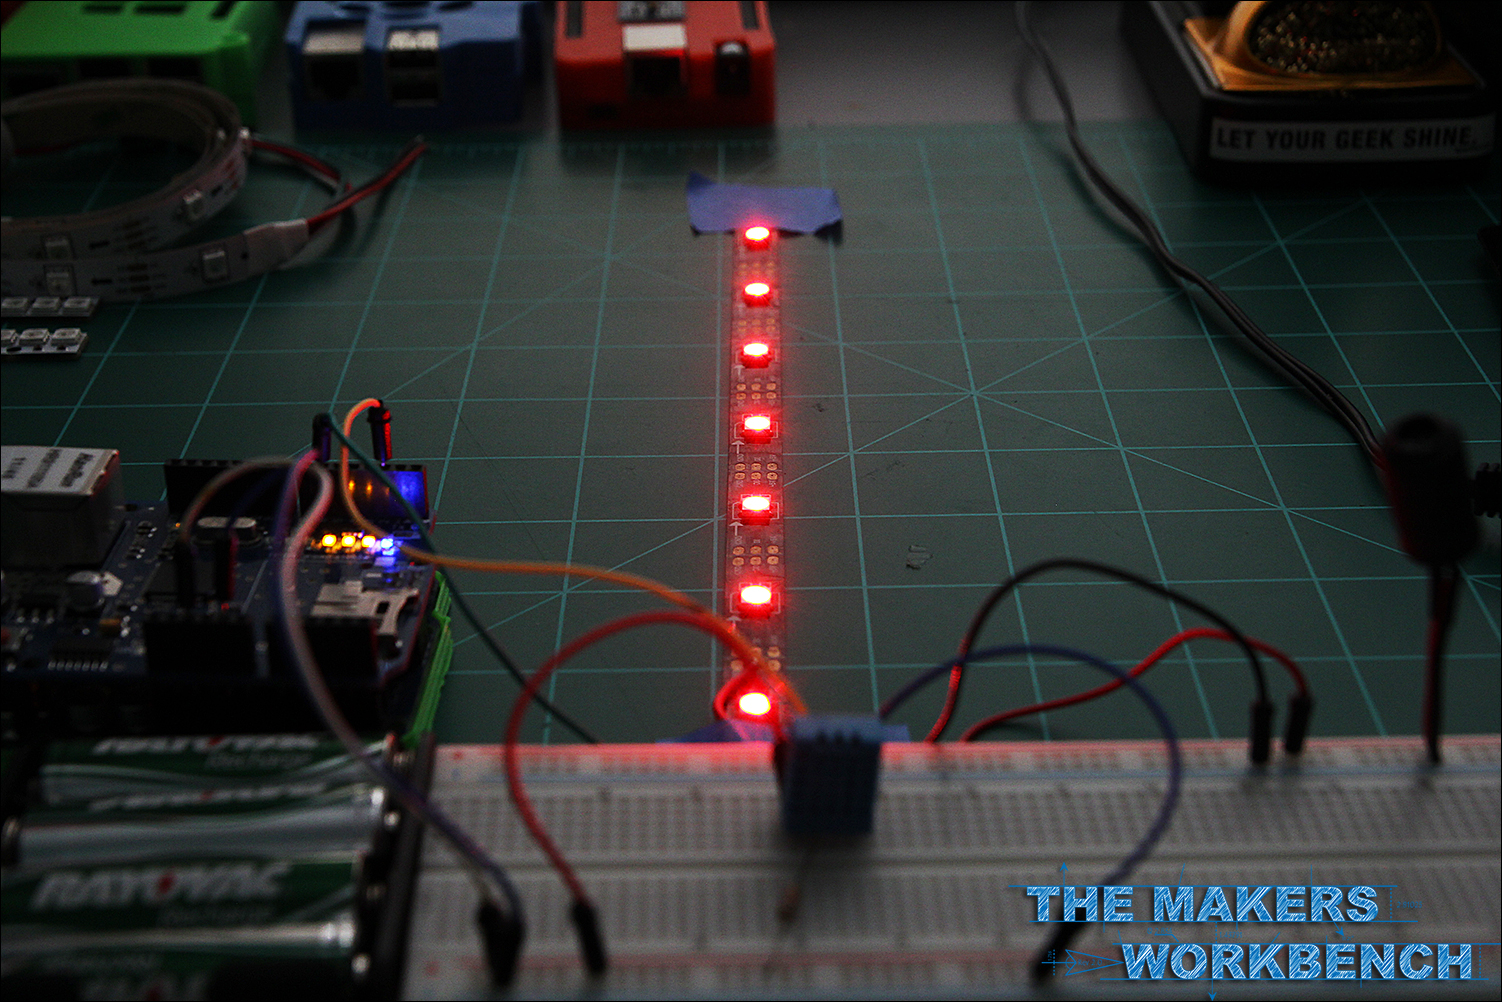 DHT11-Based Temperature Monitoring using Ethernet and NeoPixels via Arduino.